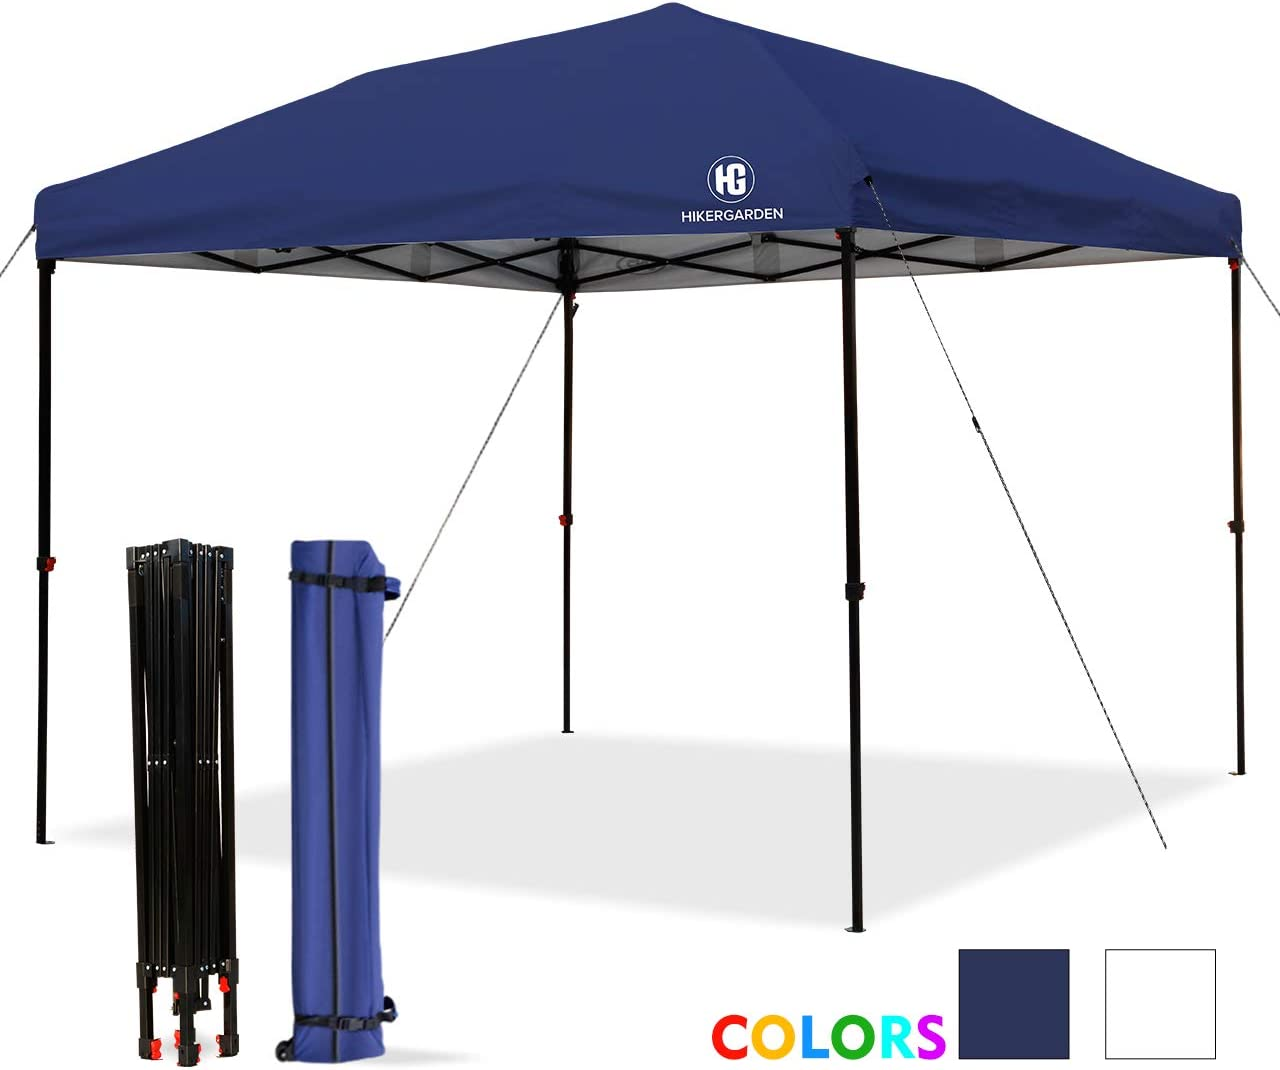 HG Pop-up-Canopy-Tent-10×10 FT, UV 50 and Waterproof Shelter, 3 Adjustable Height with Wheeled Carrying Bag, 4 Ropes and 4 Stakes, Outdoor and Commercial Instant Canopy